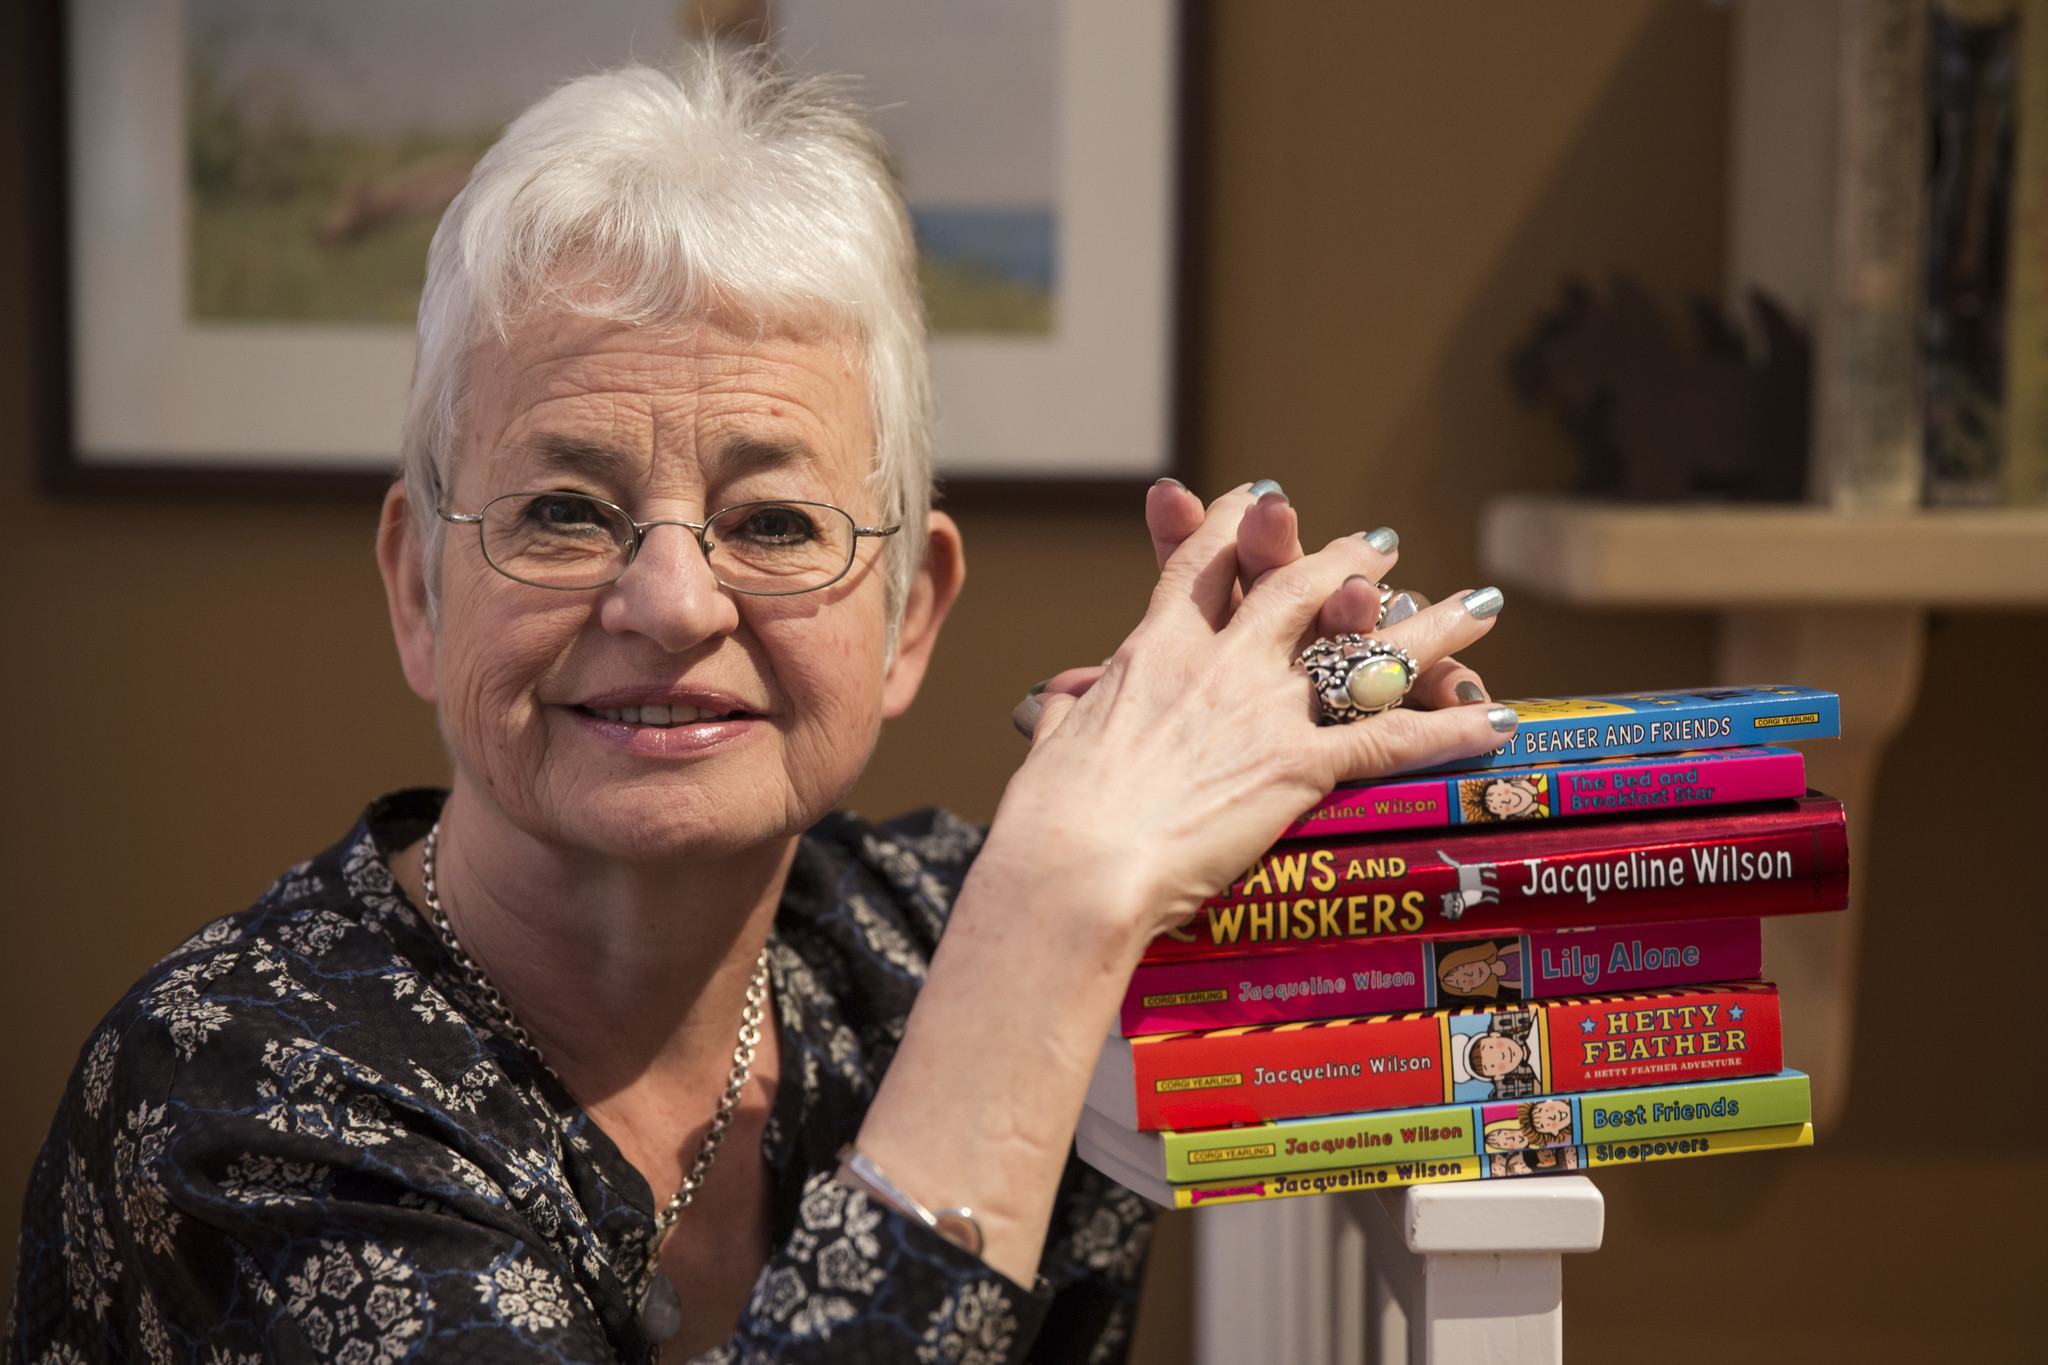 Bestselling children's book author Jacqueline Wilson reveals she's gay